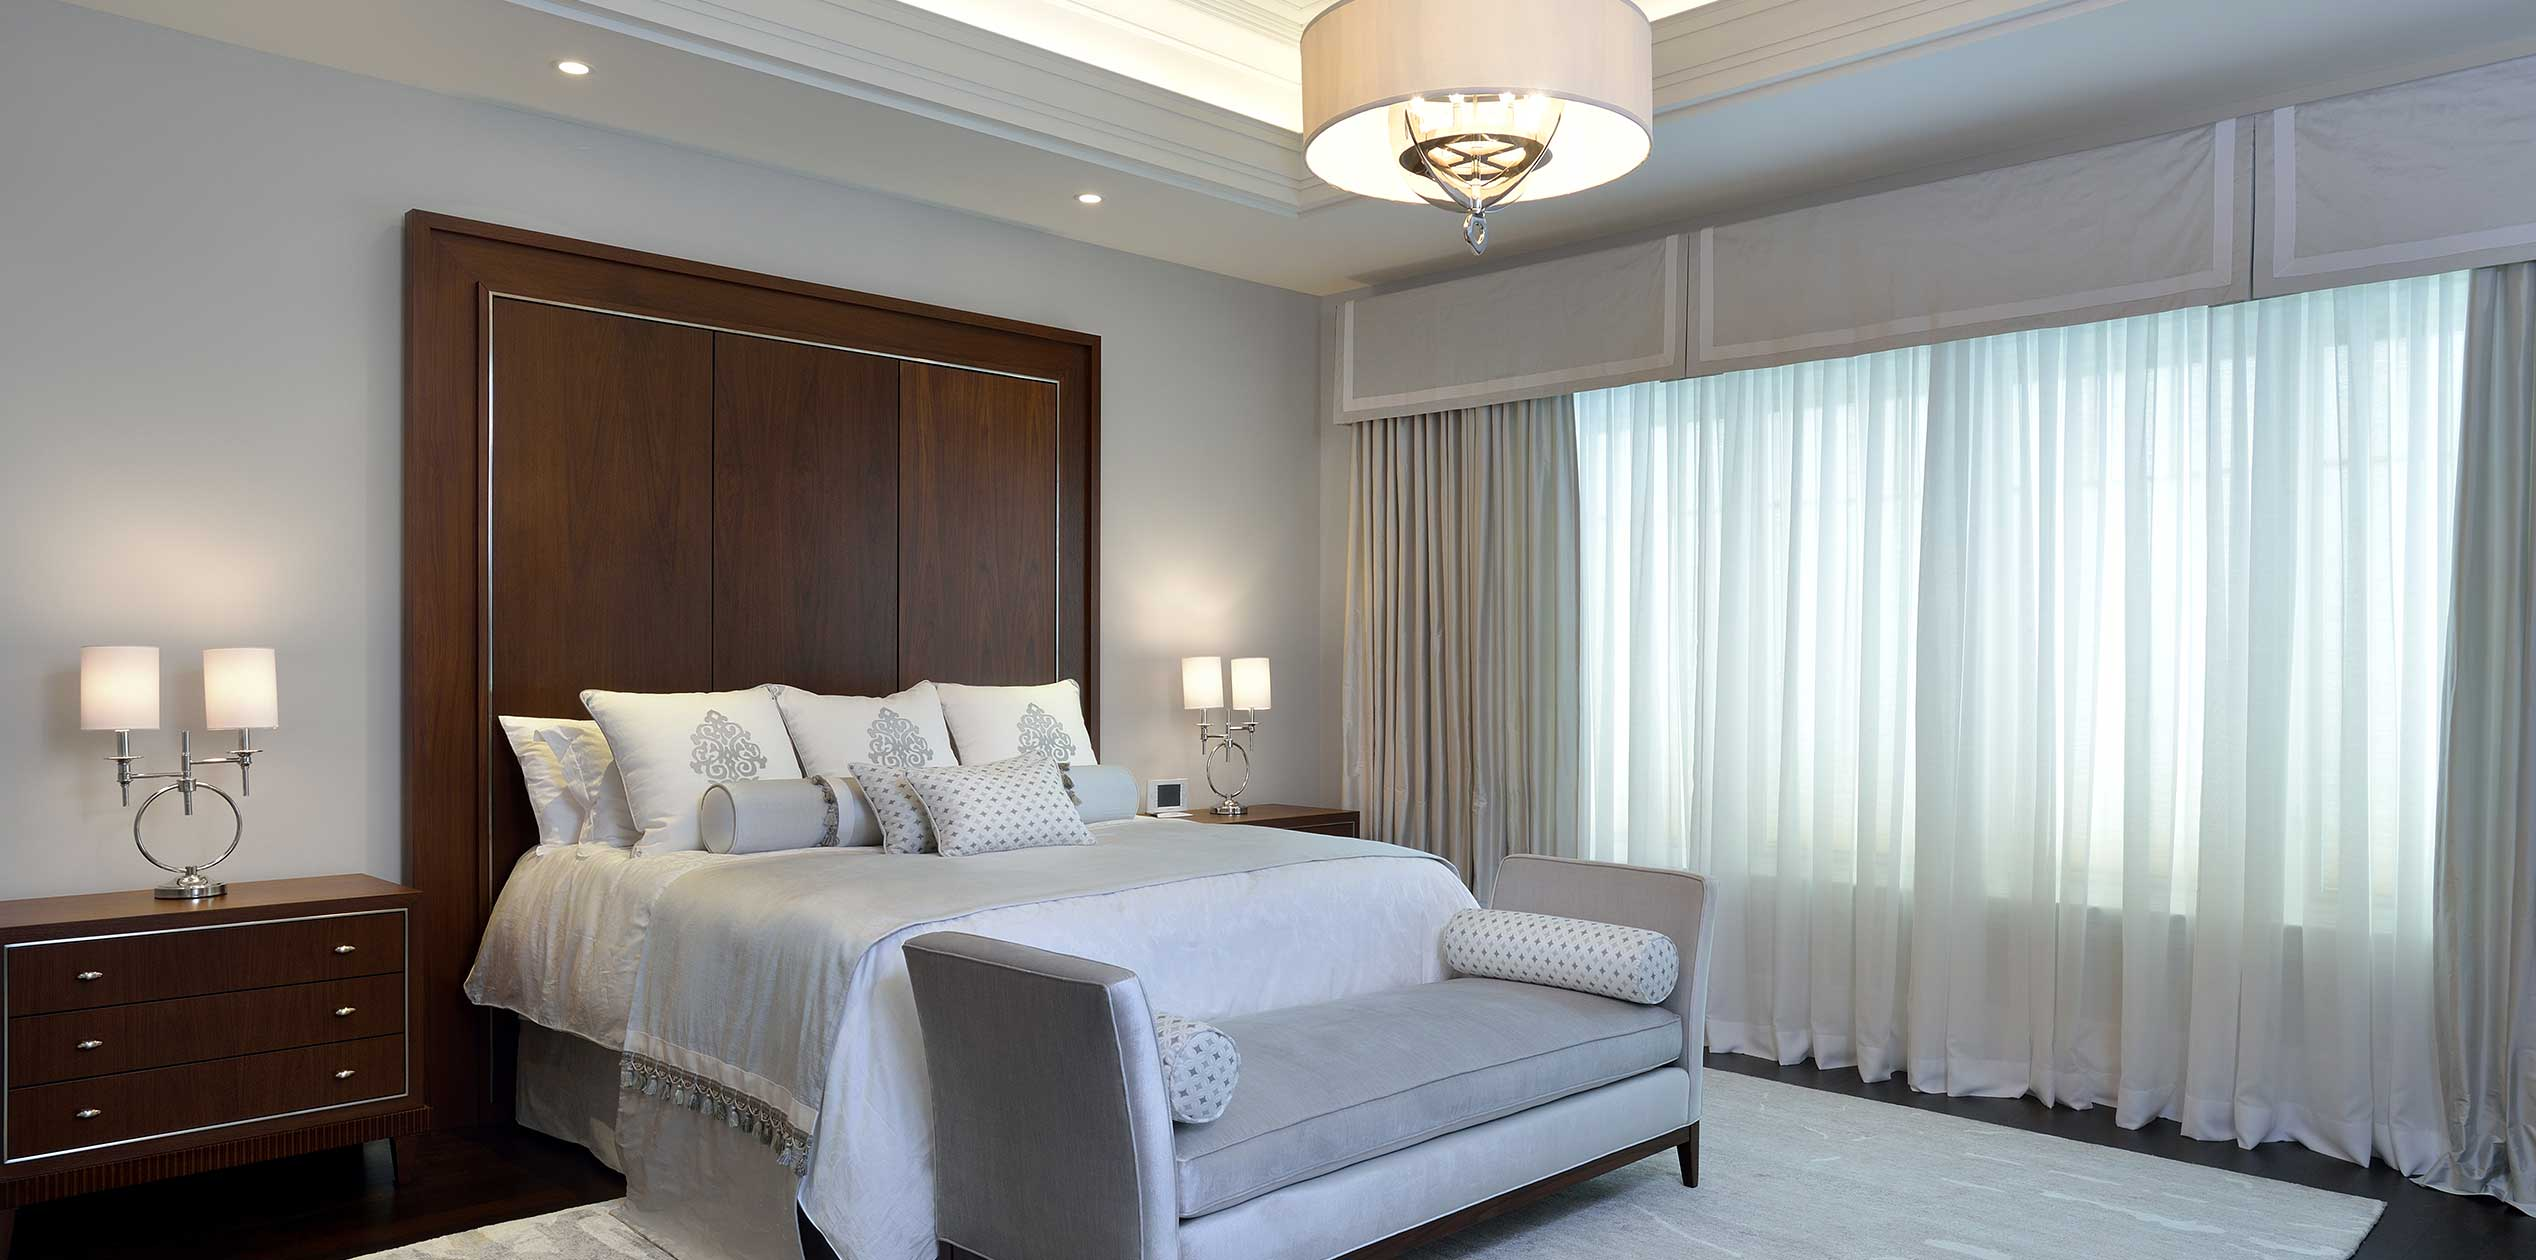 b Transitional Master Bedroom Suite